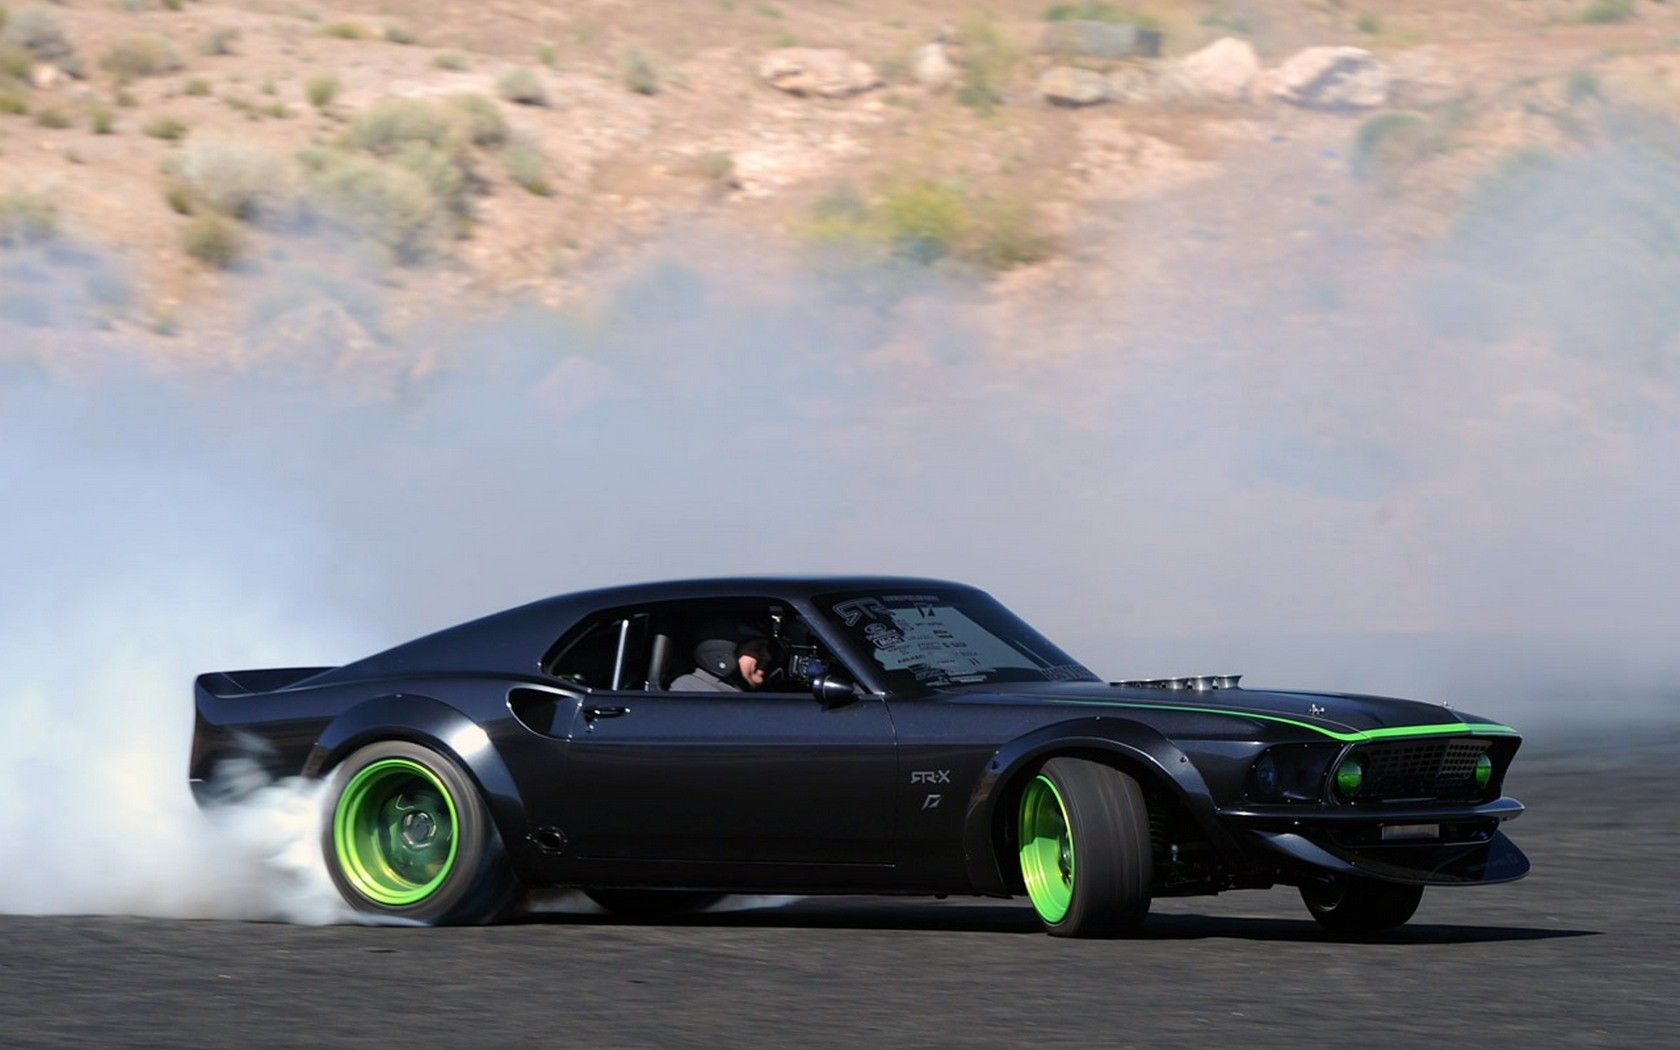 Ford Mustang Rtr X Muscle Cars Mustang Best Muscle Cars